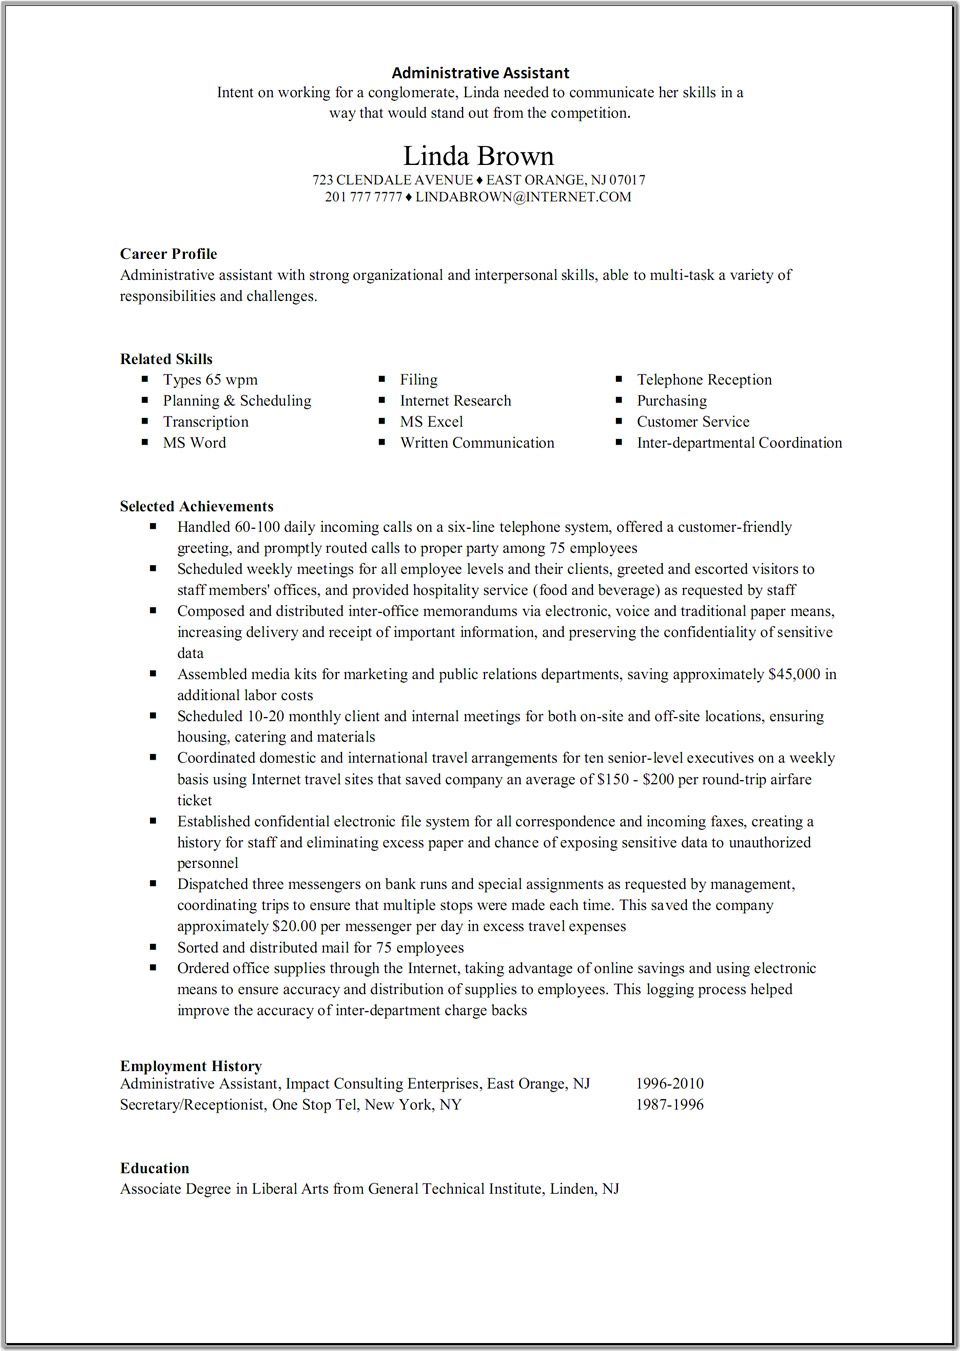 sample resume office assistant best ideas about administrative assistant pinterest work best ideas about administrative assistant